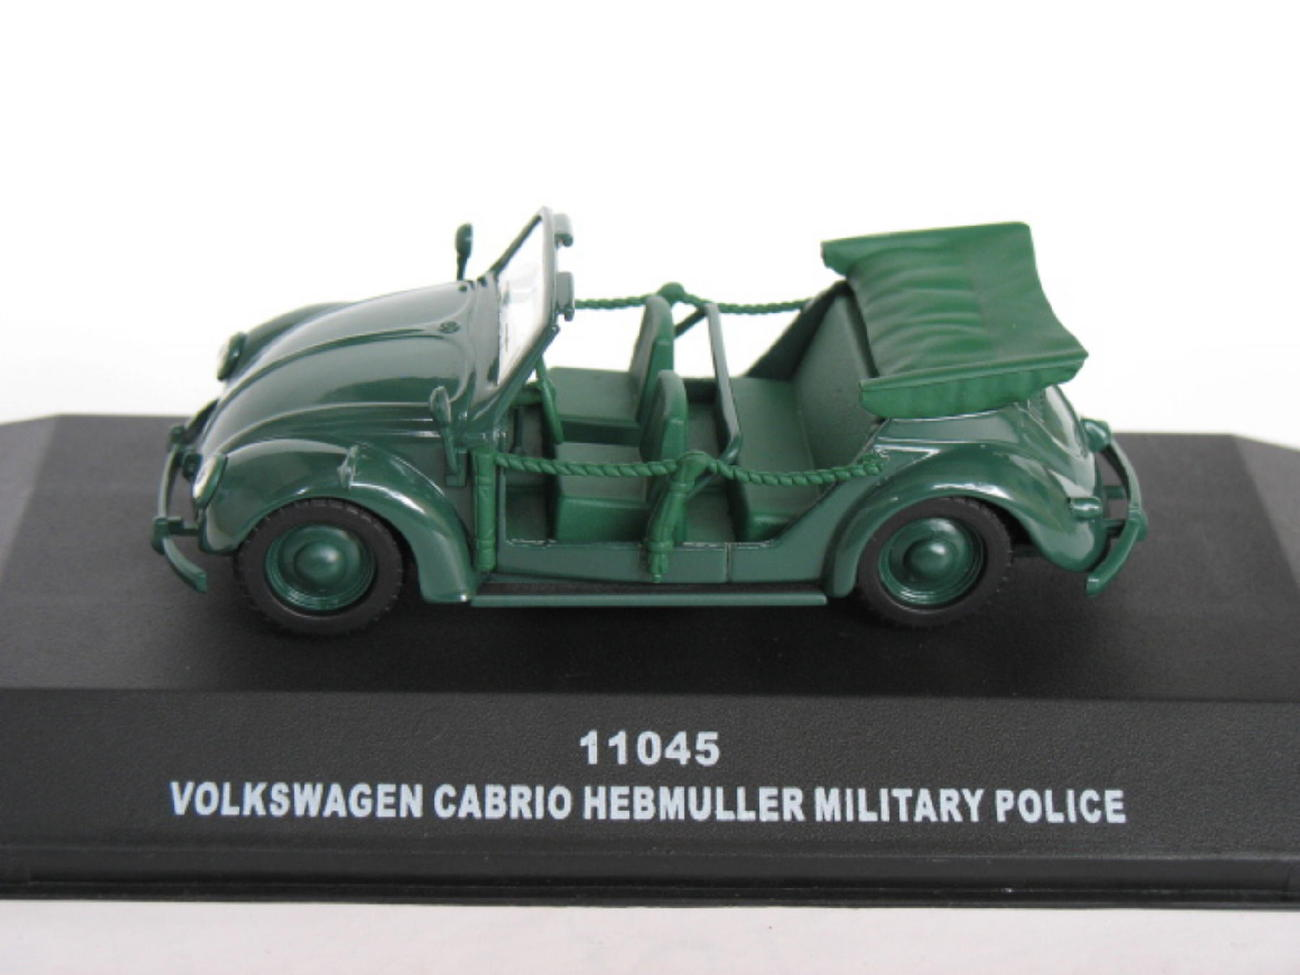 Primary image for Volkswagen Cabrio Hebmuller Military Police Open 1/43 die cast model car (Rare)